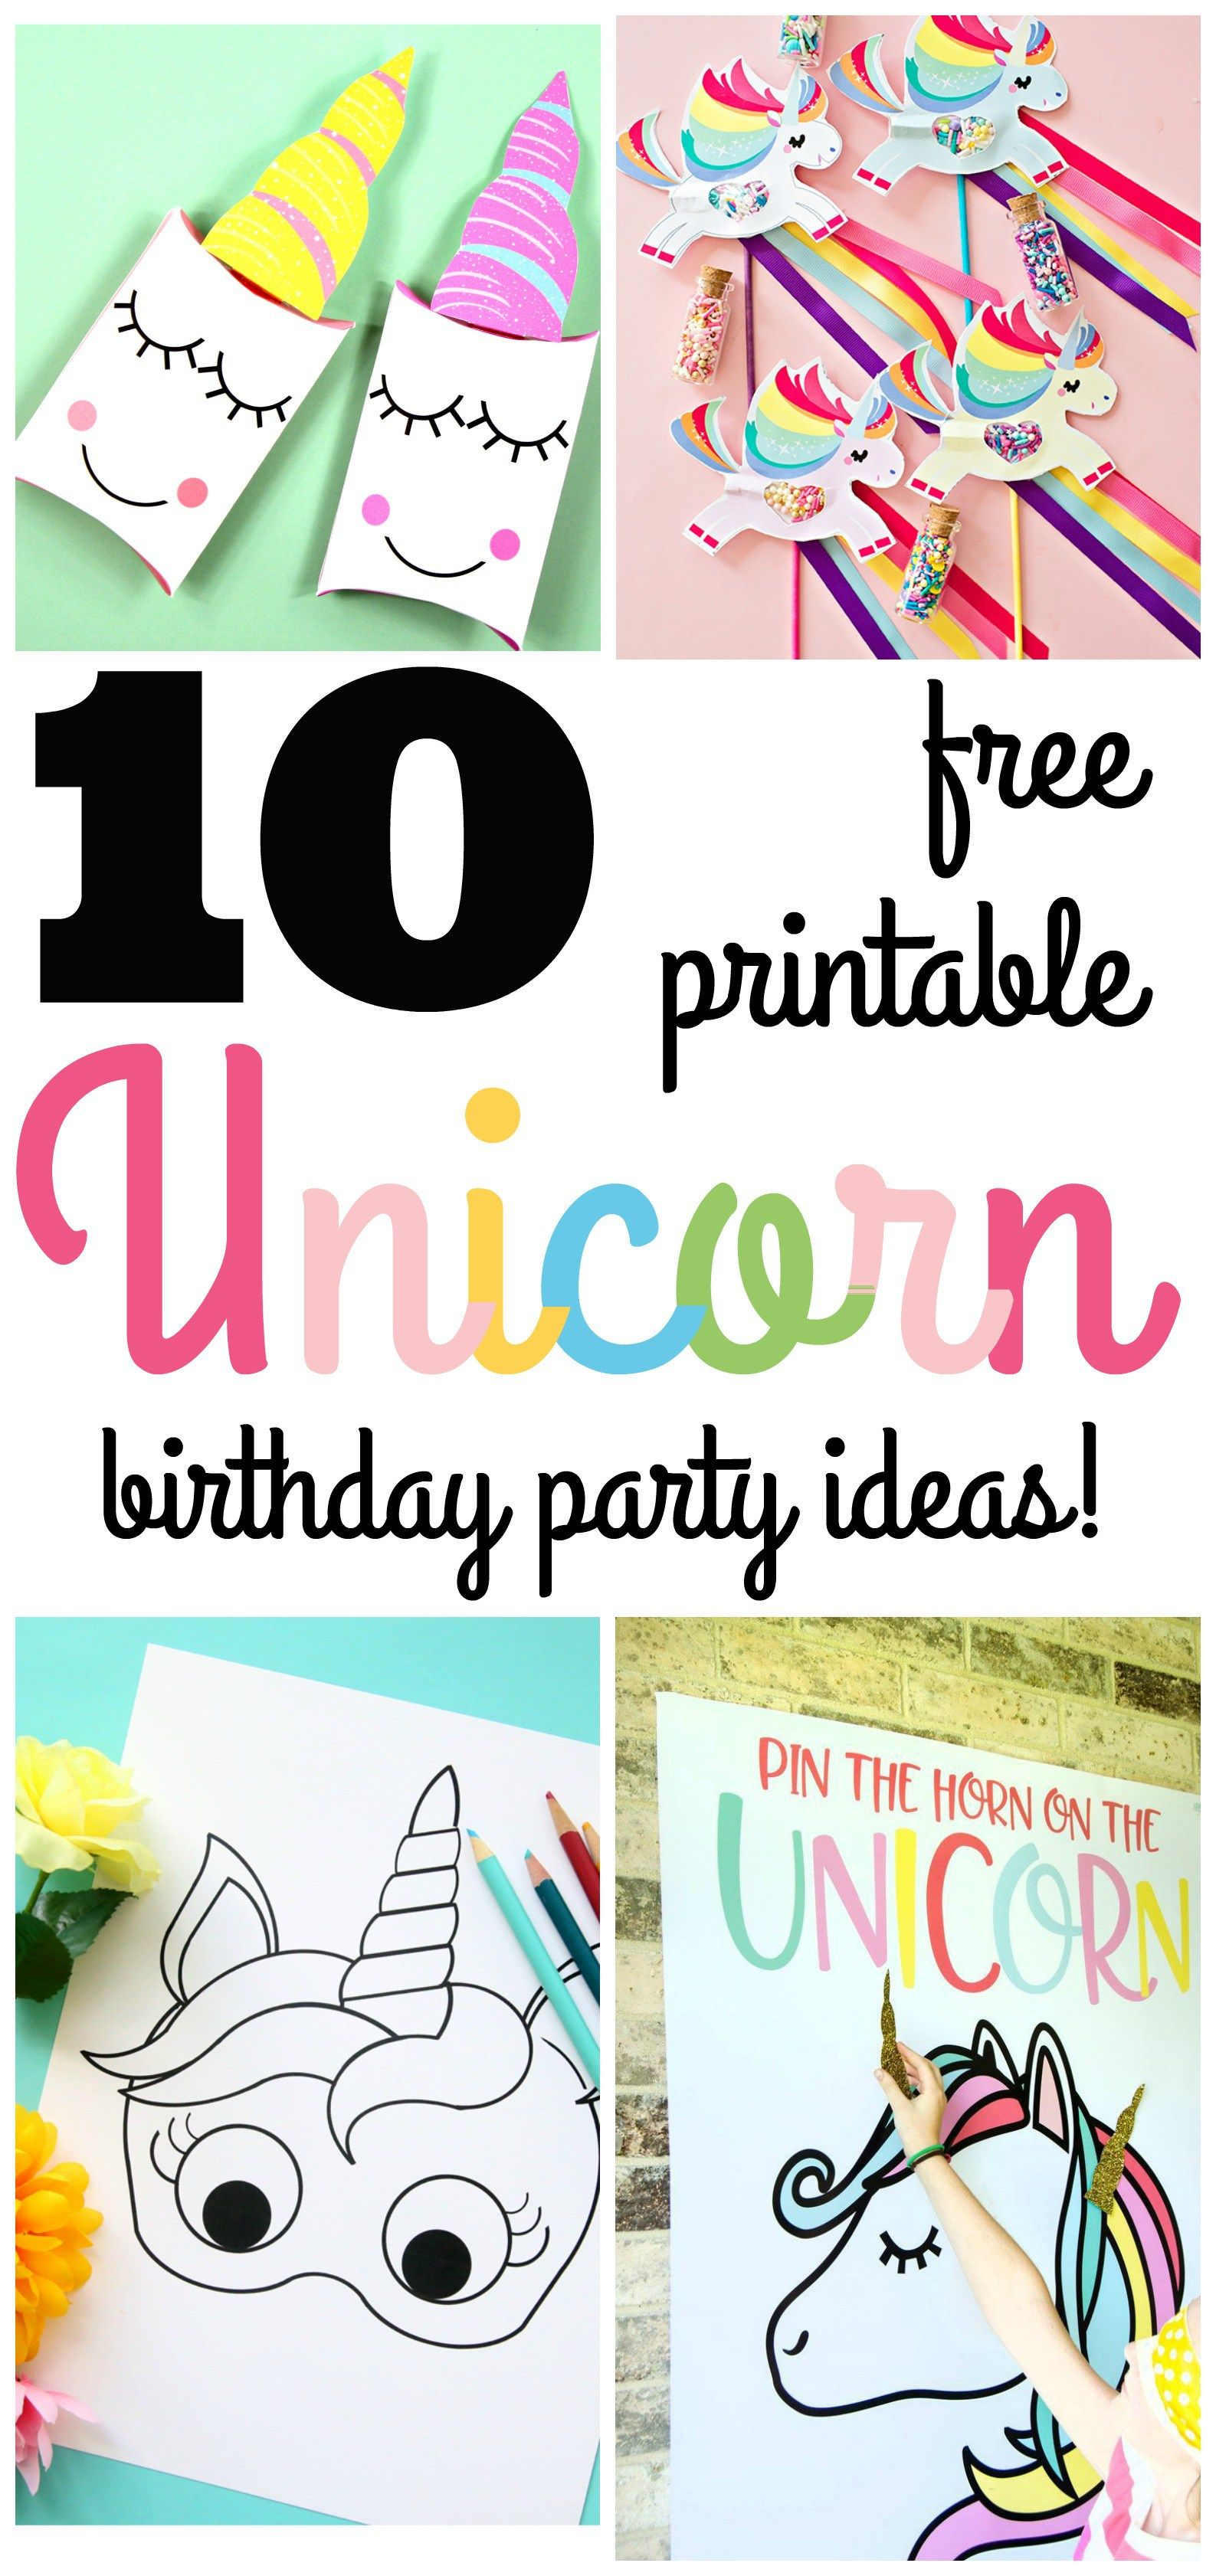 10 Beautiful Unicorn Birthday Party Ideas With Free Printables